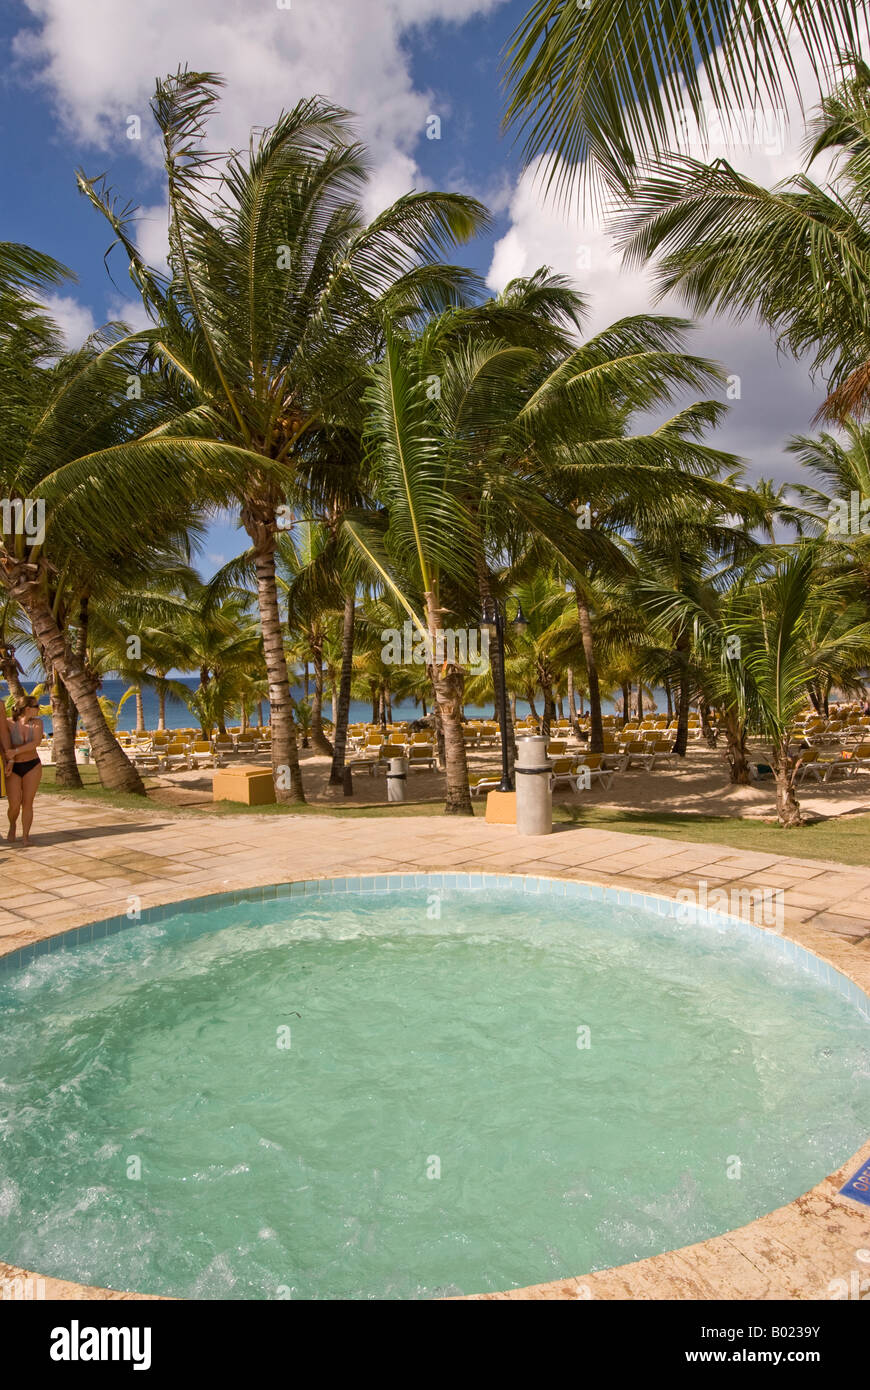 Dominican republic bayahibe small round swimming pool palm - Palm beach swimming pool ...